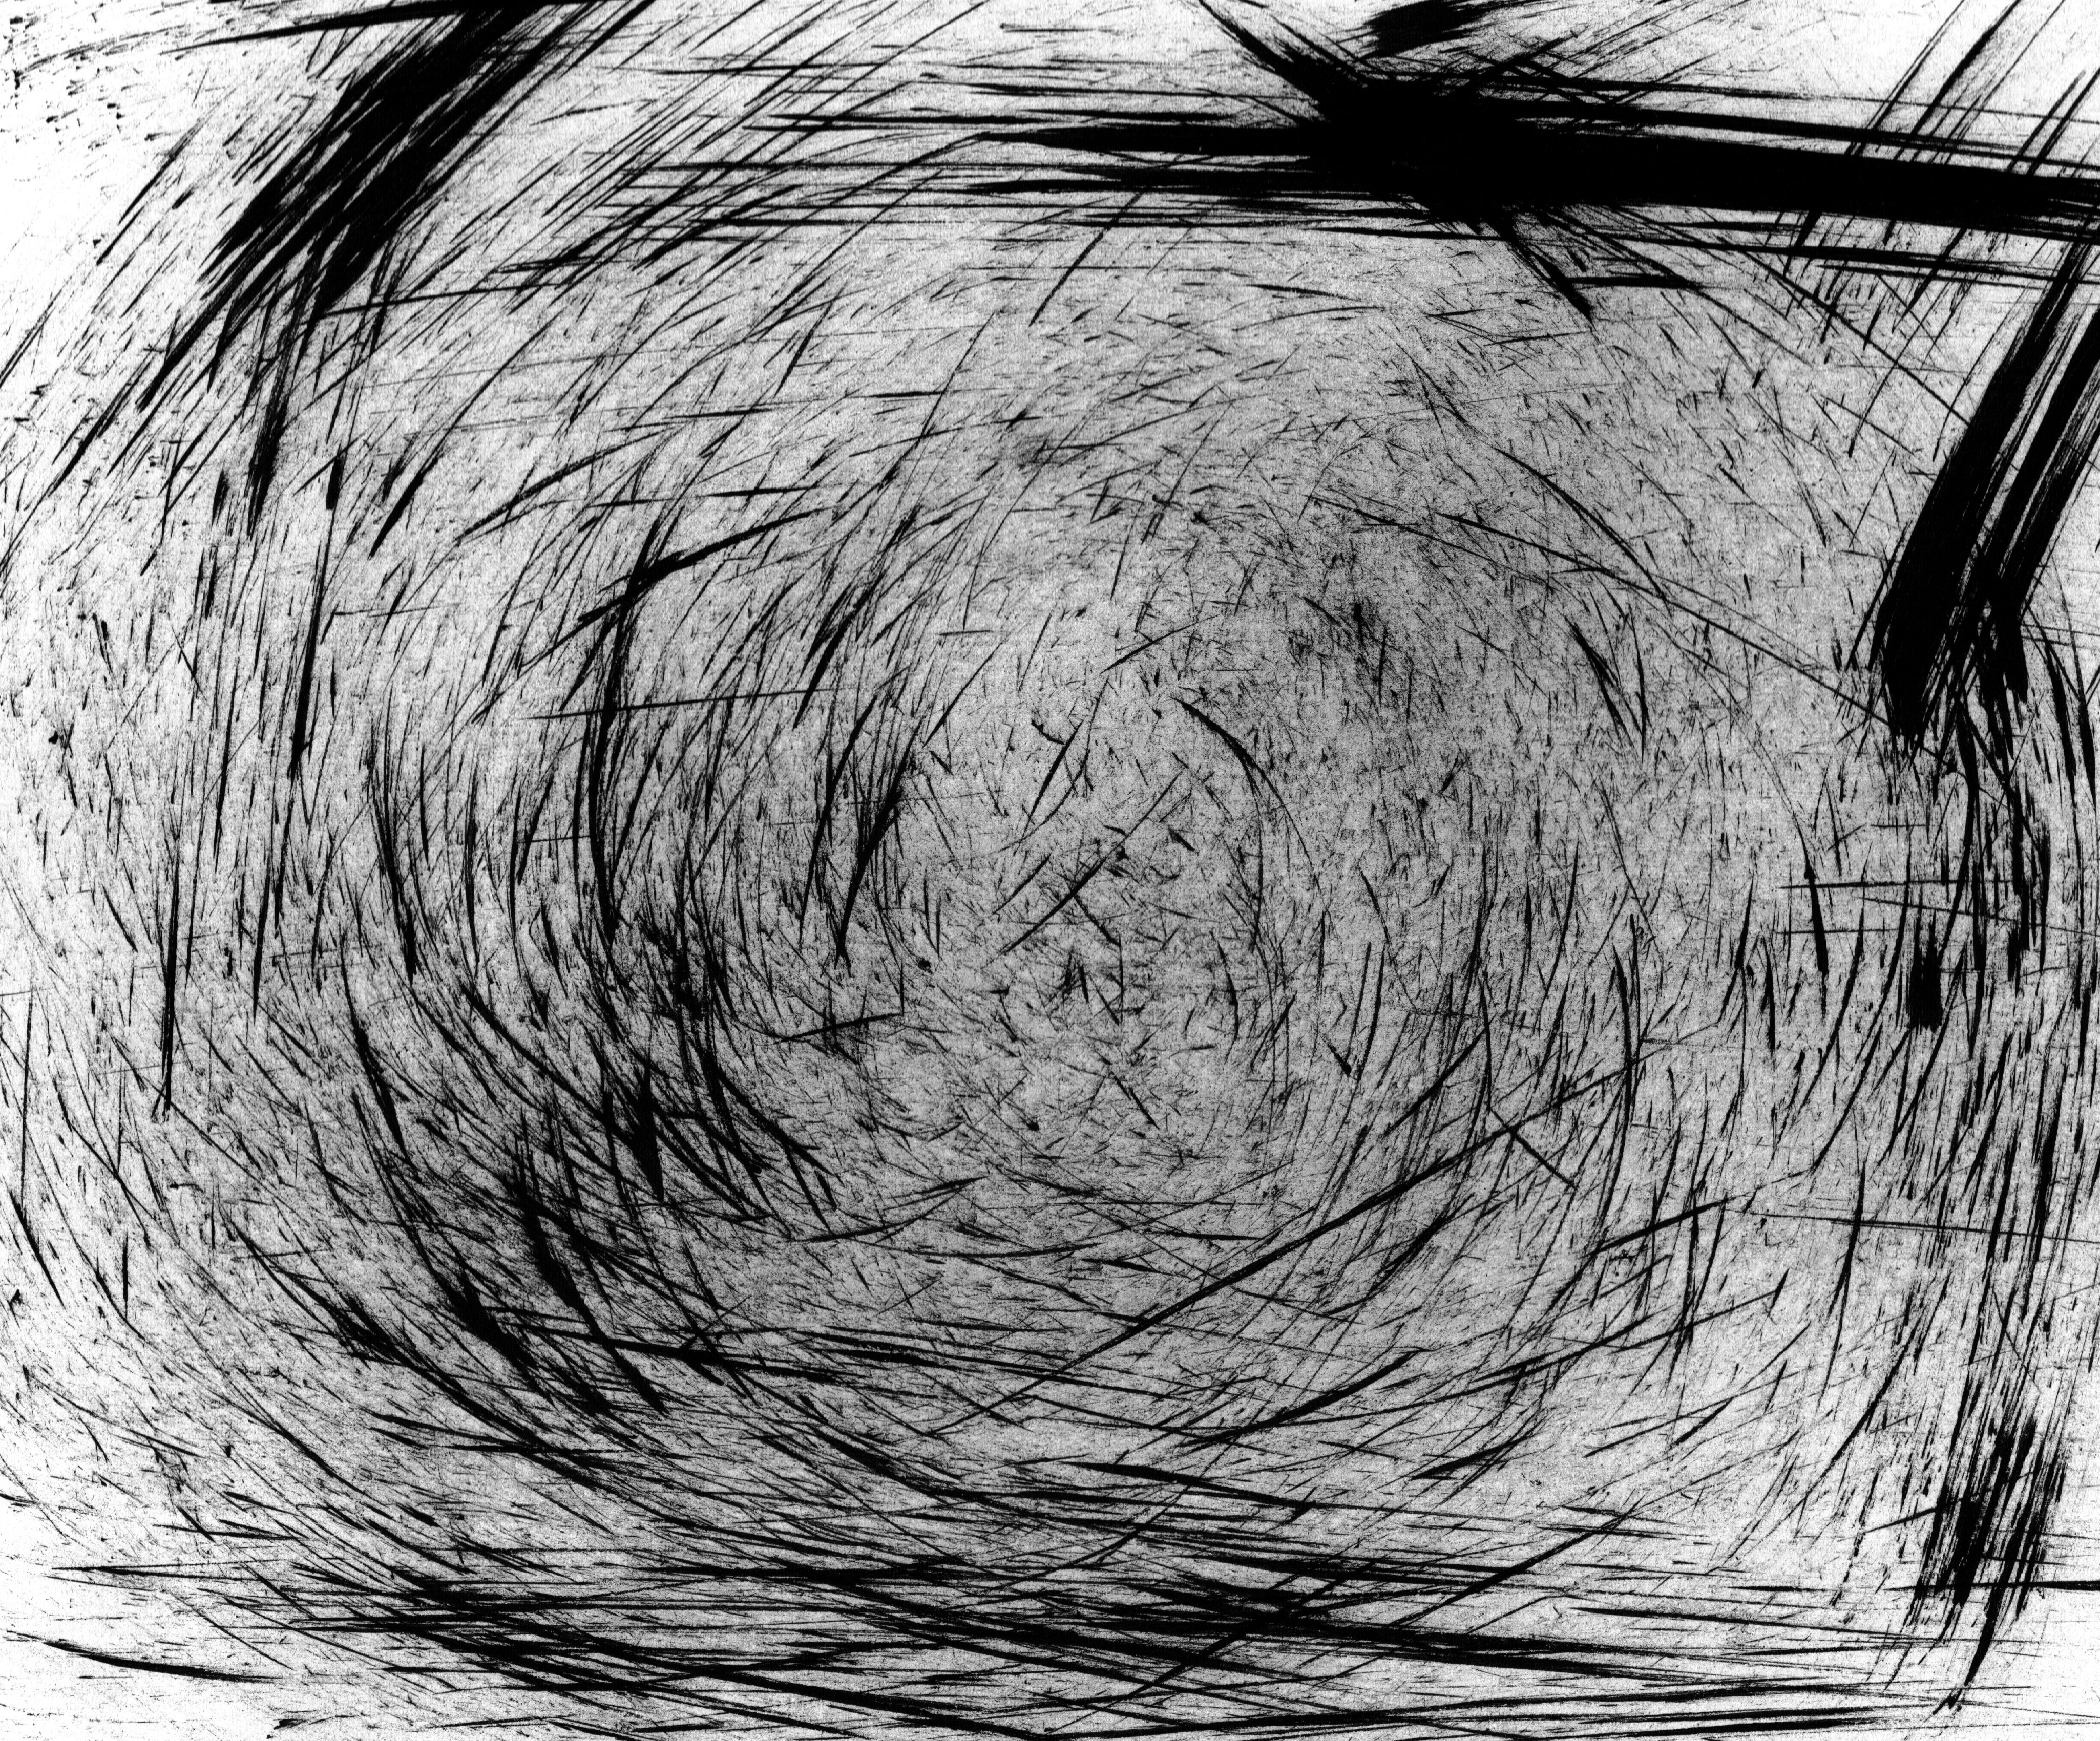 Scratched Effects Black And White Texture Jpg Onlygfx Com